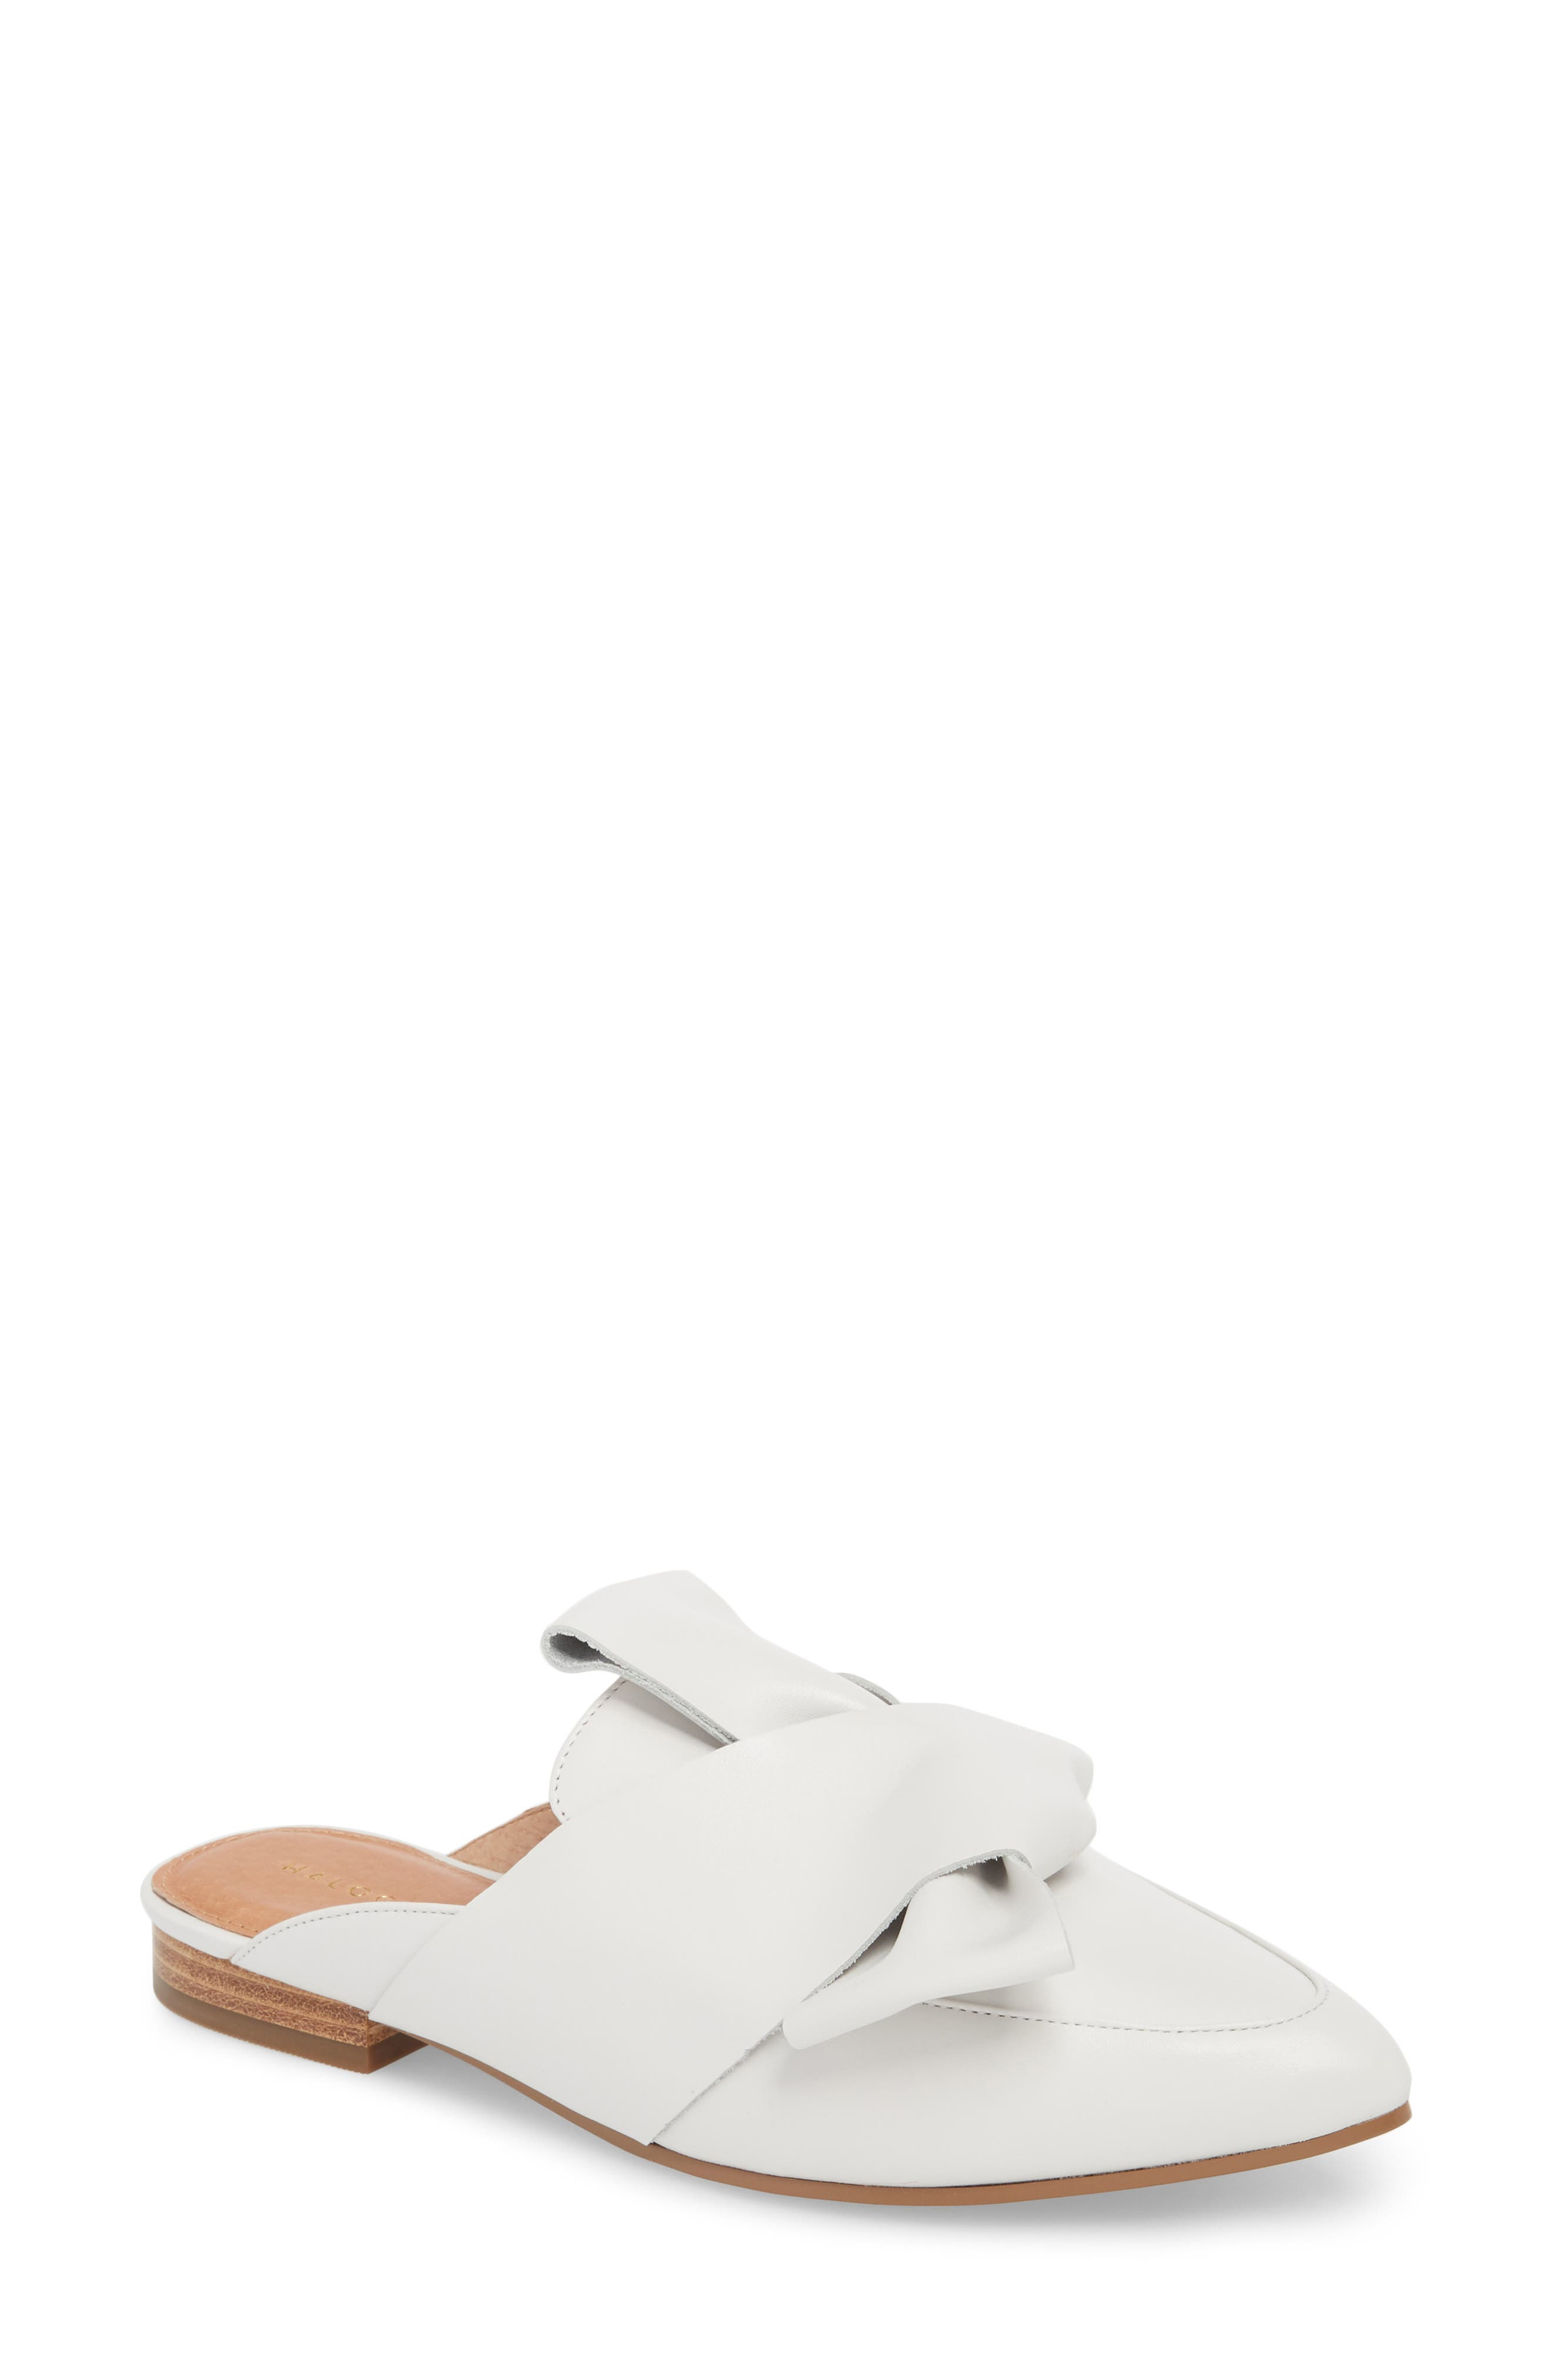 Coral Mule,                         Main,                         color, White Leather